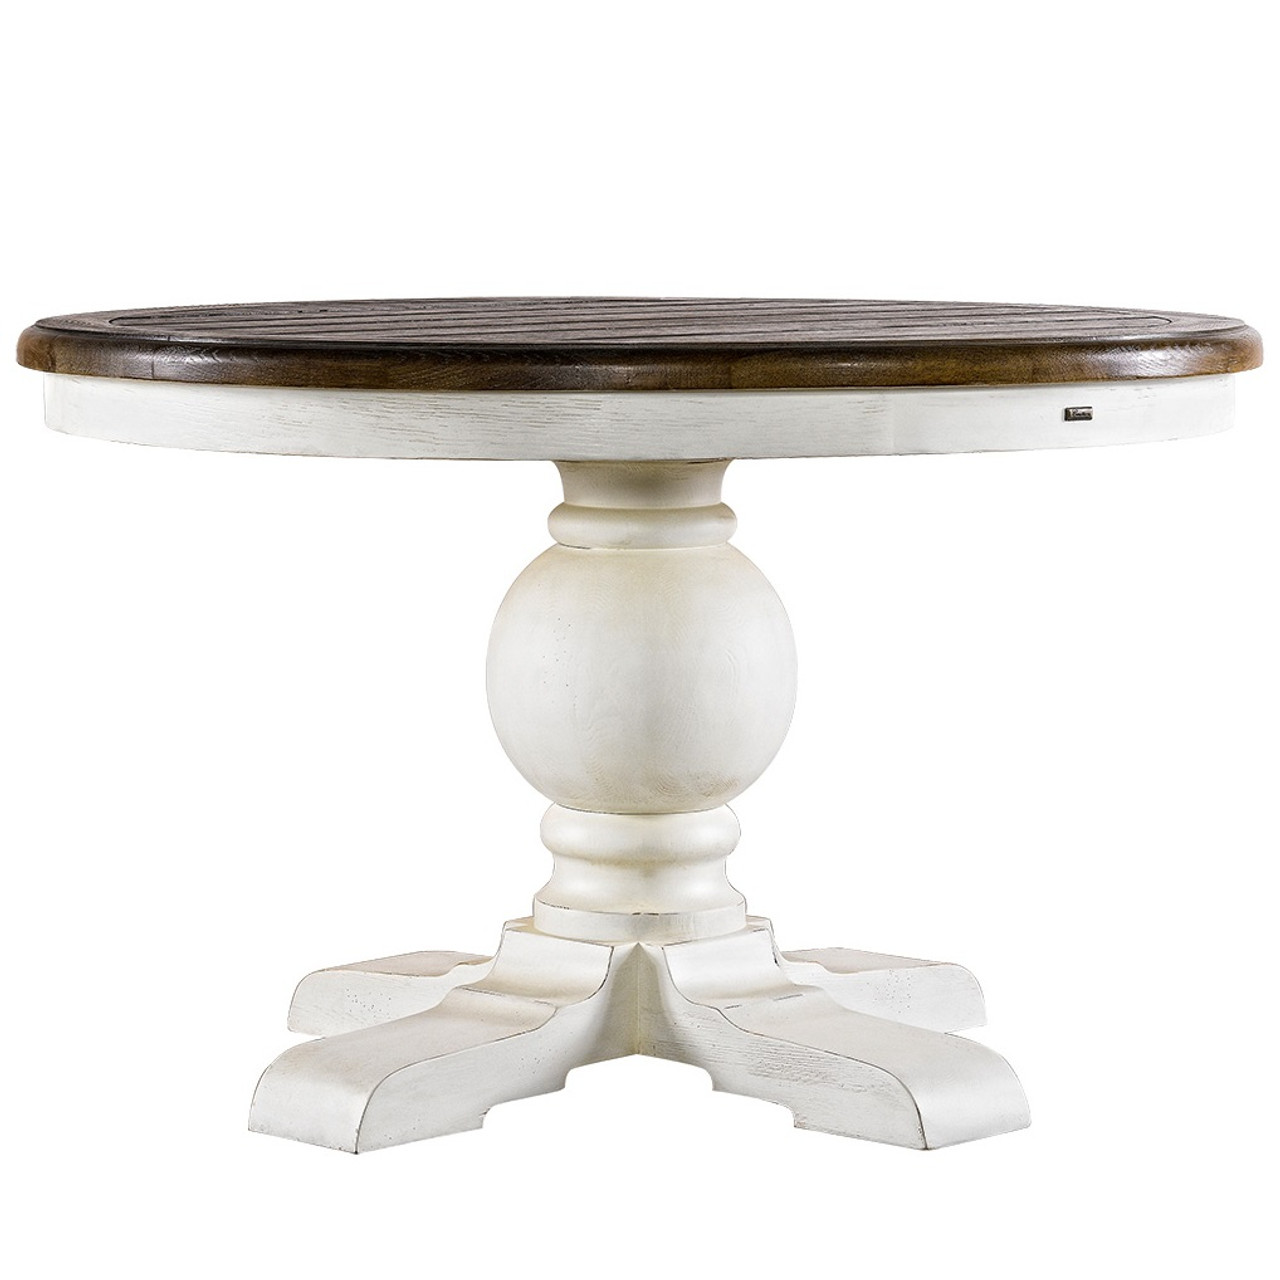 Kingdom Antique White Oak Round Pedestal Dining Table 48 Zin Home